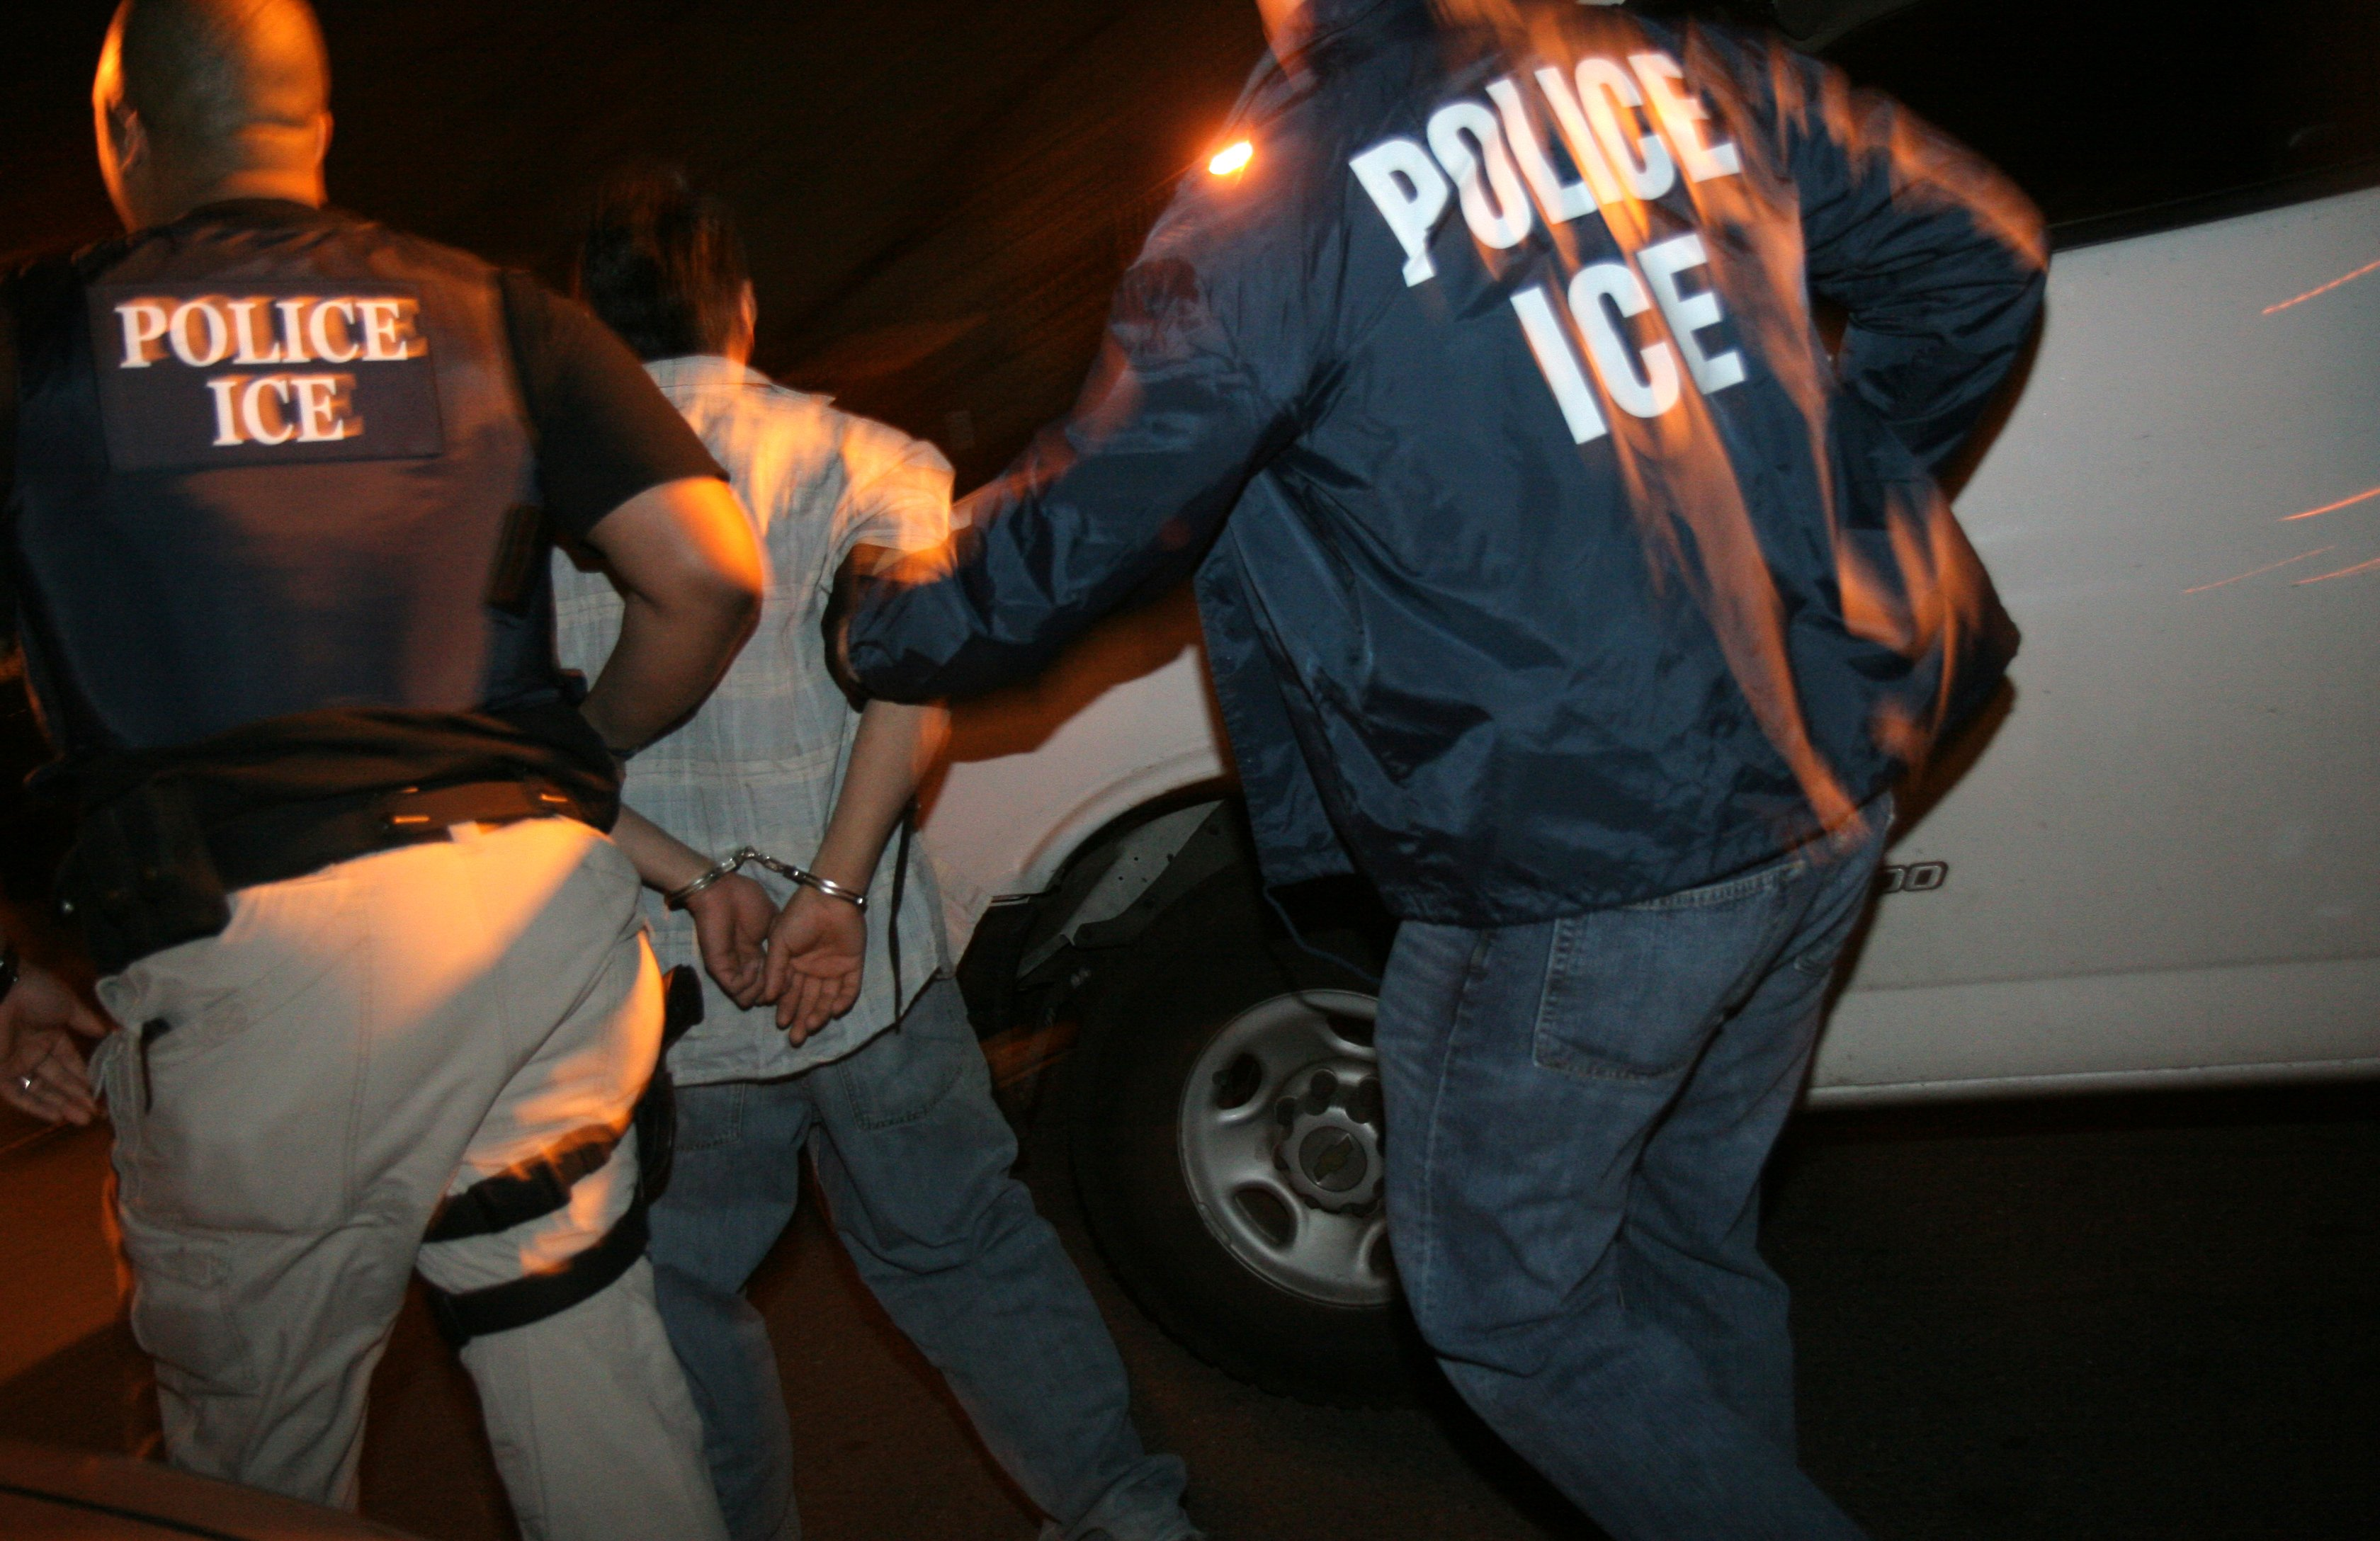 Eighty-eight percent of the 212 individuals arrested in the Los Angeles area this week for immigration law violations were previously convicted criminals. Over the course of five days, U.S. Immigration and Customs Enforcement (ICE) deportation officers and special agents made the arrests and served 122 notices of inspection (NOIs) to businesses in the Los Angeles area of …